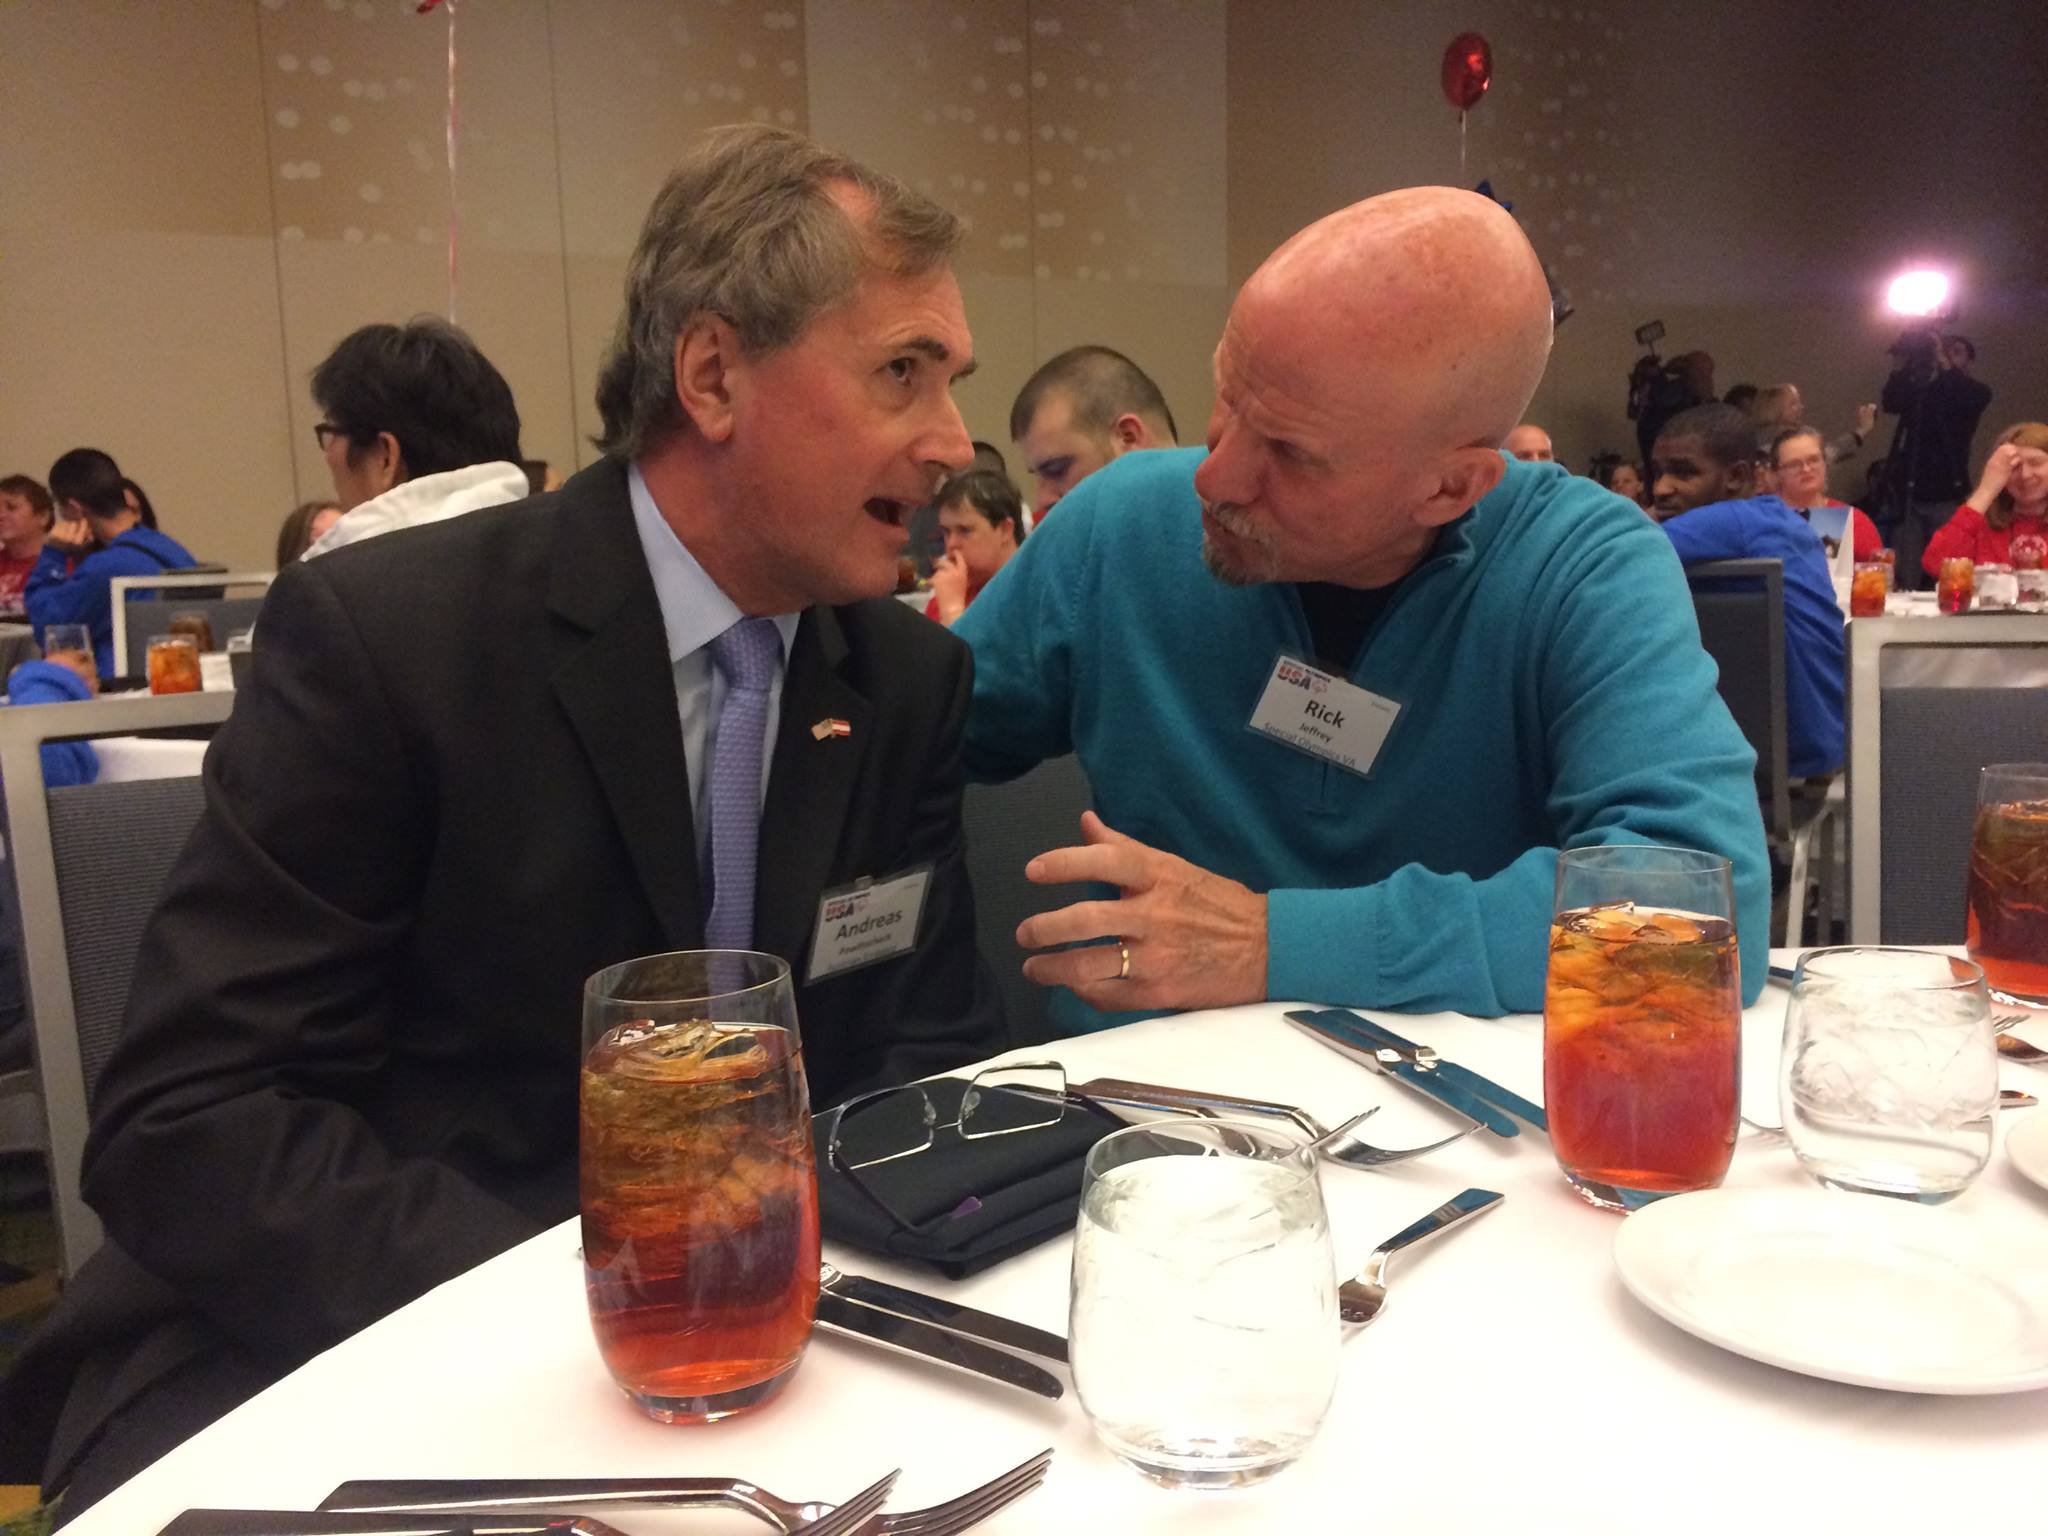 Andreas Pawlitschek, Director of the Austrian Cultural Forum Washington, and Rick Jeffrey, President of Special Olympics Virginia